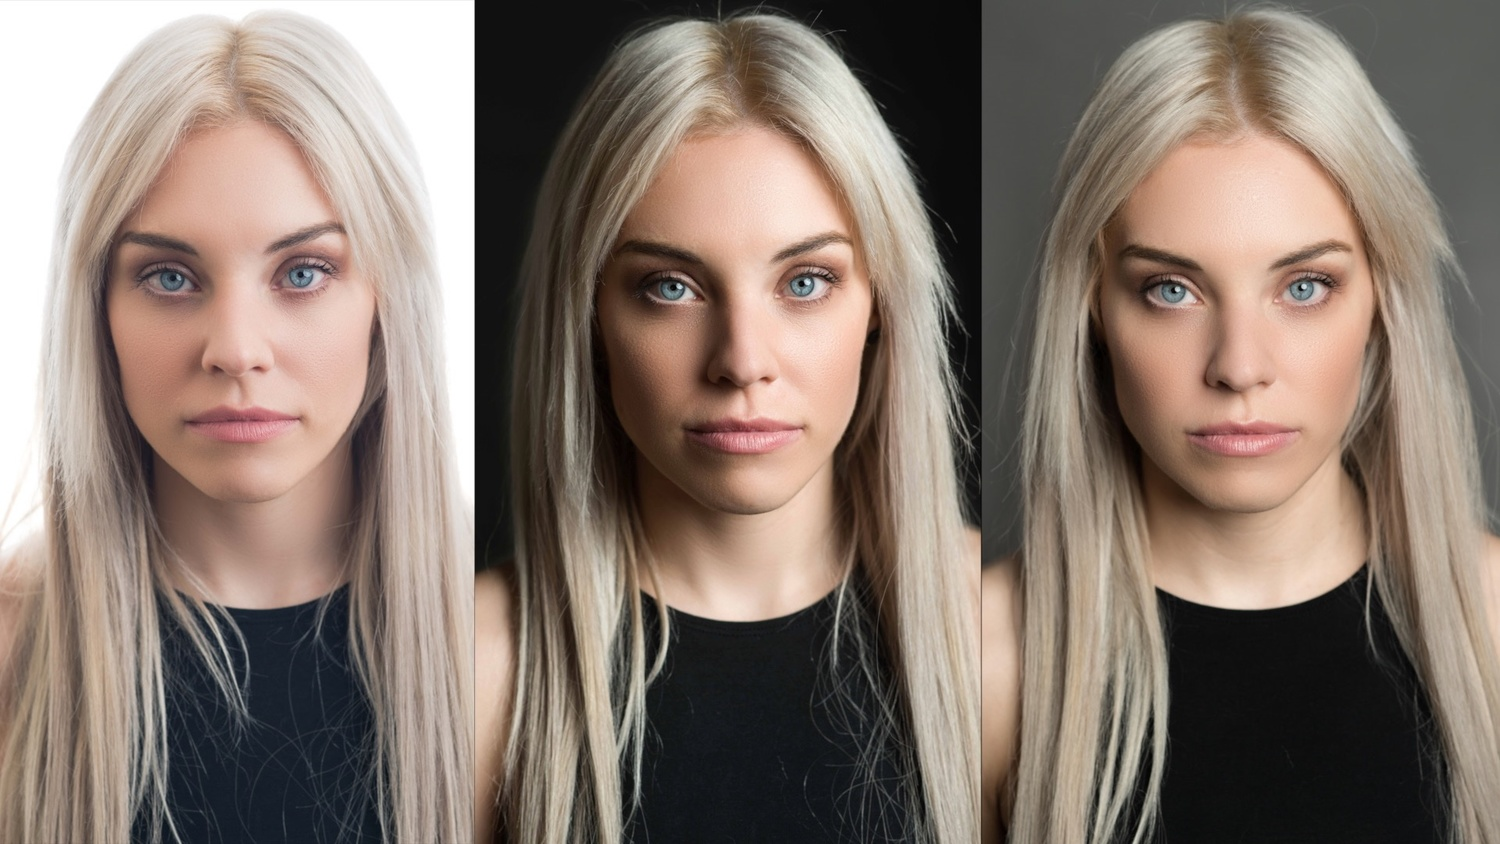 Here are the three shots side by side so you can really see the difference.  sc 1 st  Fstoppers & The Headshot Setup That Will Save You Time and Impress Your Clients ...